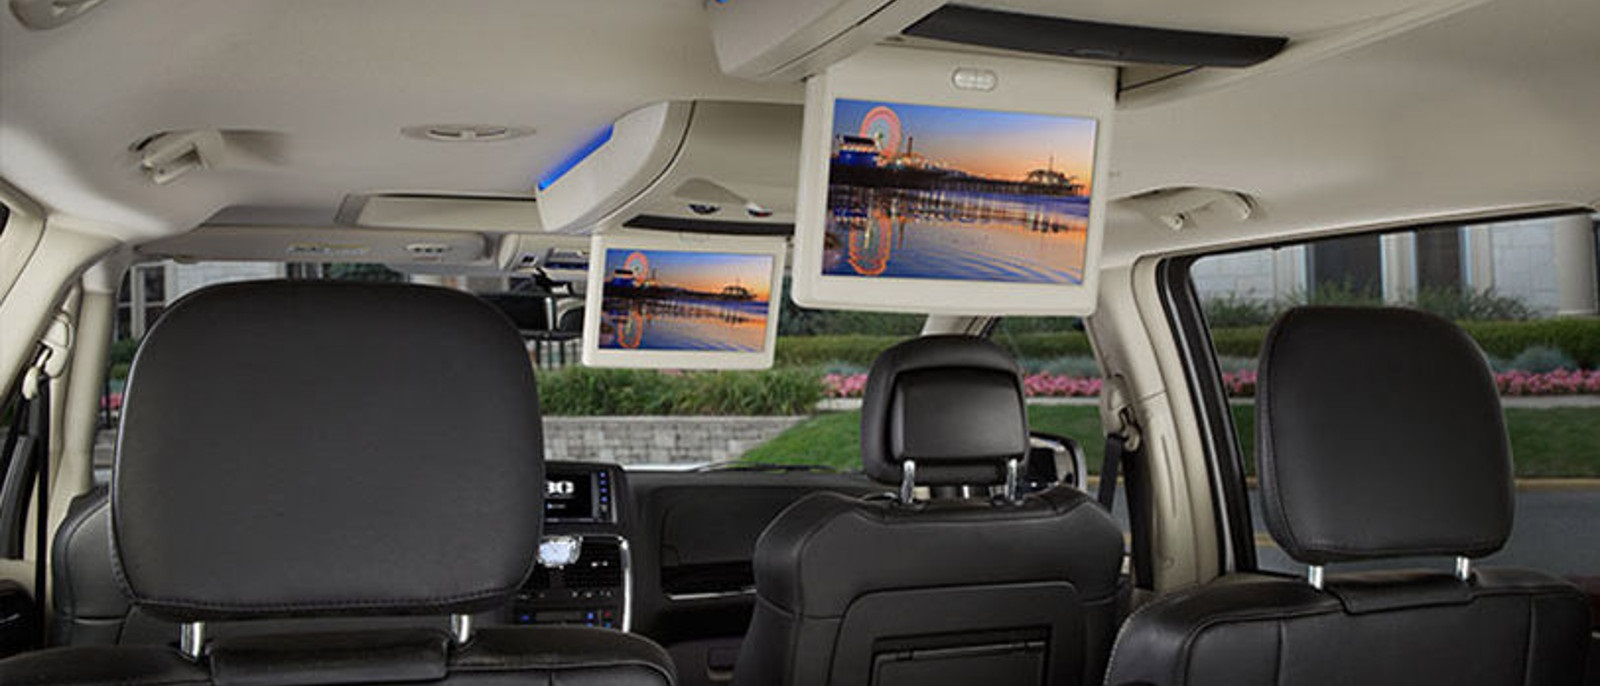 2016 Chrysler Town and Country Interior